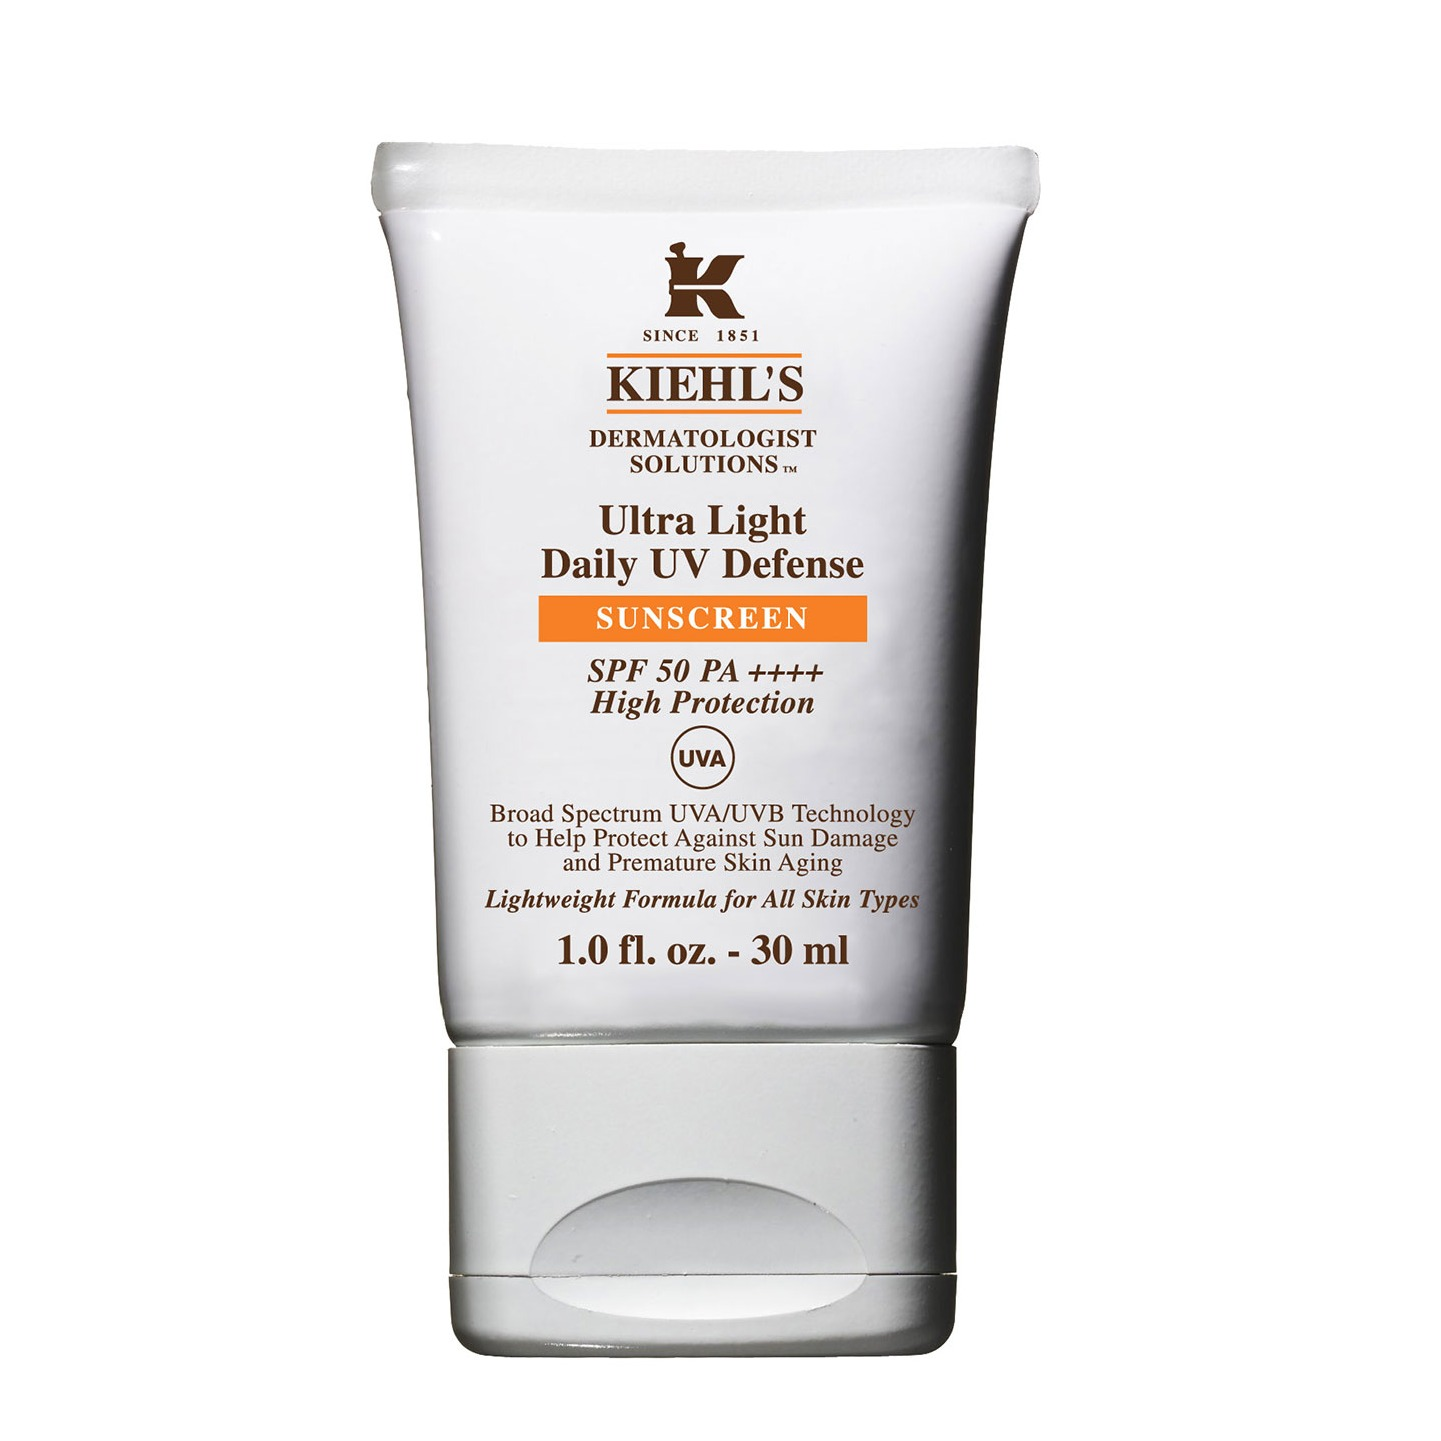 Kiehl's Ultra Light Daily UV Defense SPF 50 PA+++